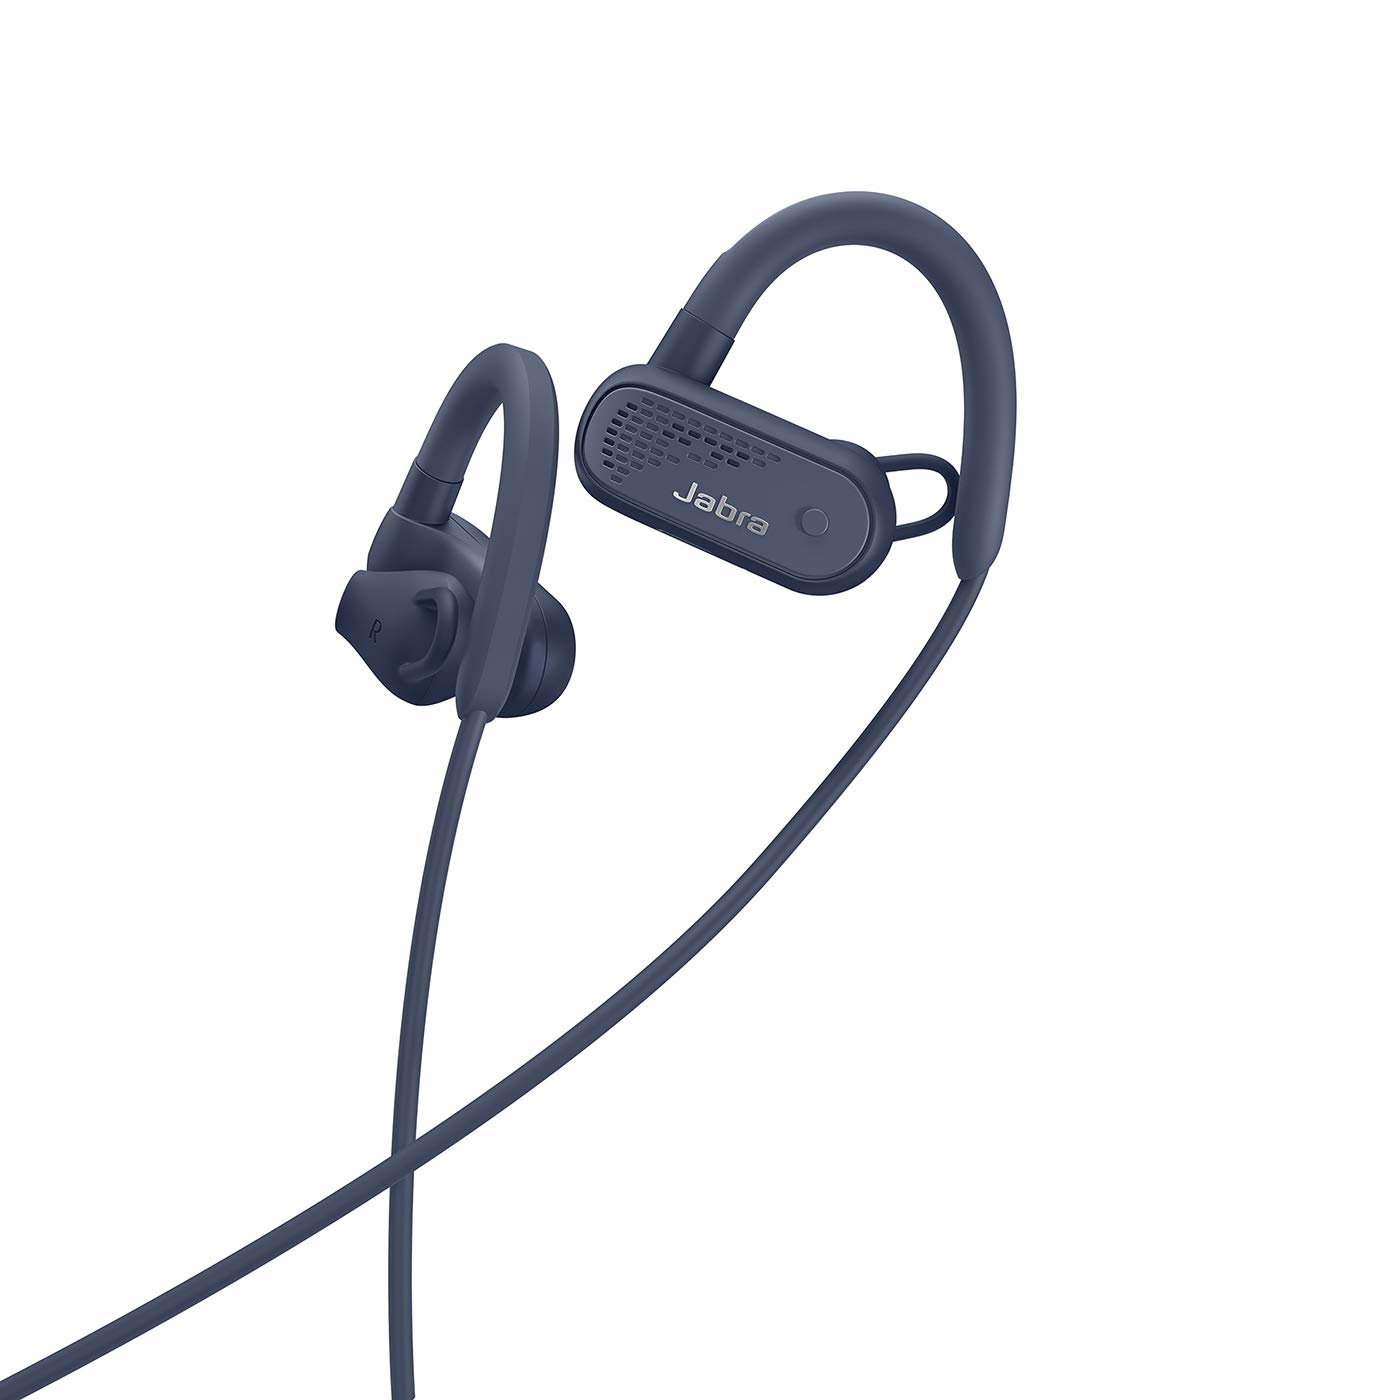 Amazon Com Jabra Elite Active 45e Wireless Sports Earbuds Navy Alexa Built In Wireless Bluetooth Earbuds Around The Neck Style With A Secure Fit And Superior Sound Long Battery Life Ideal For Running